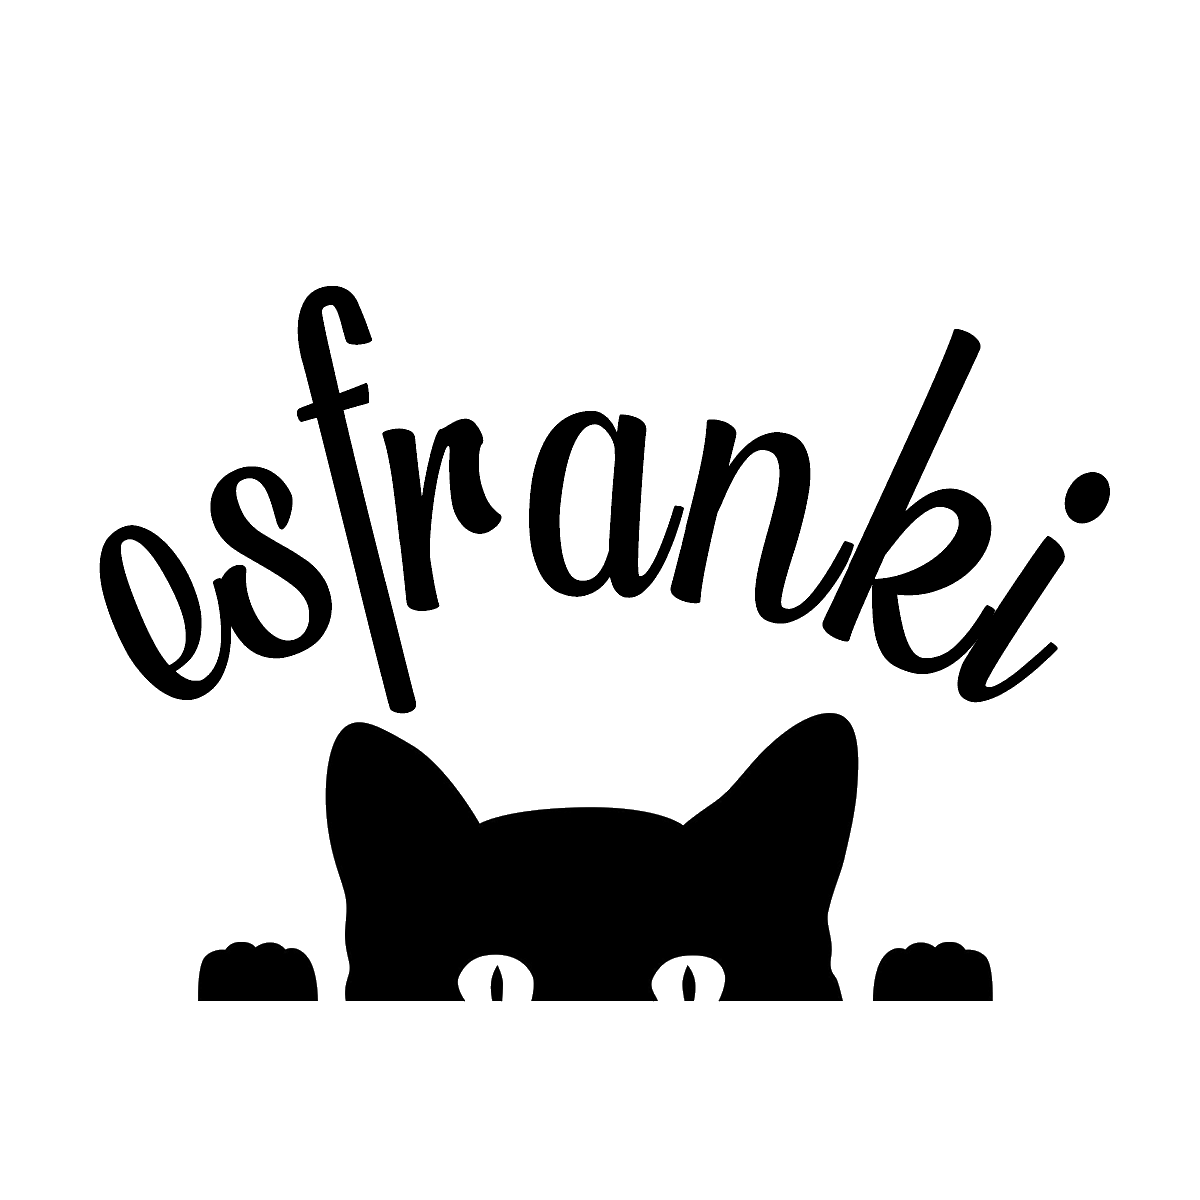 esfranki-co